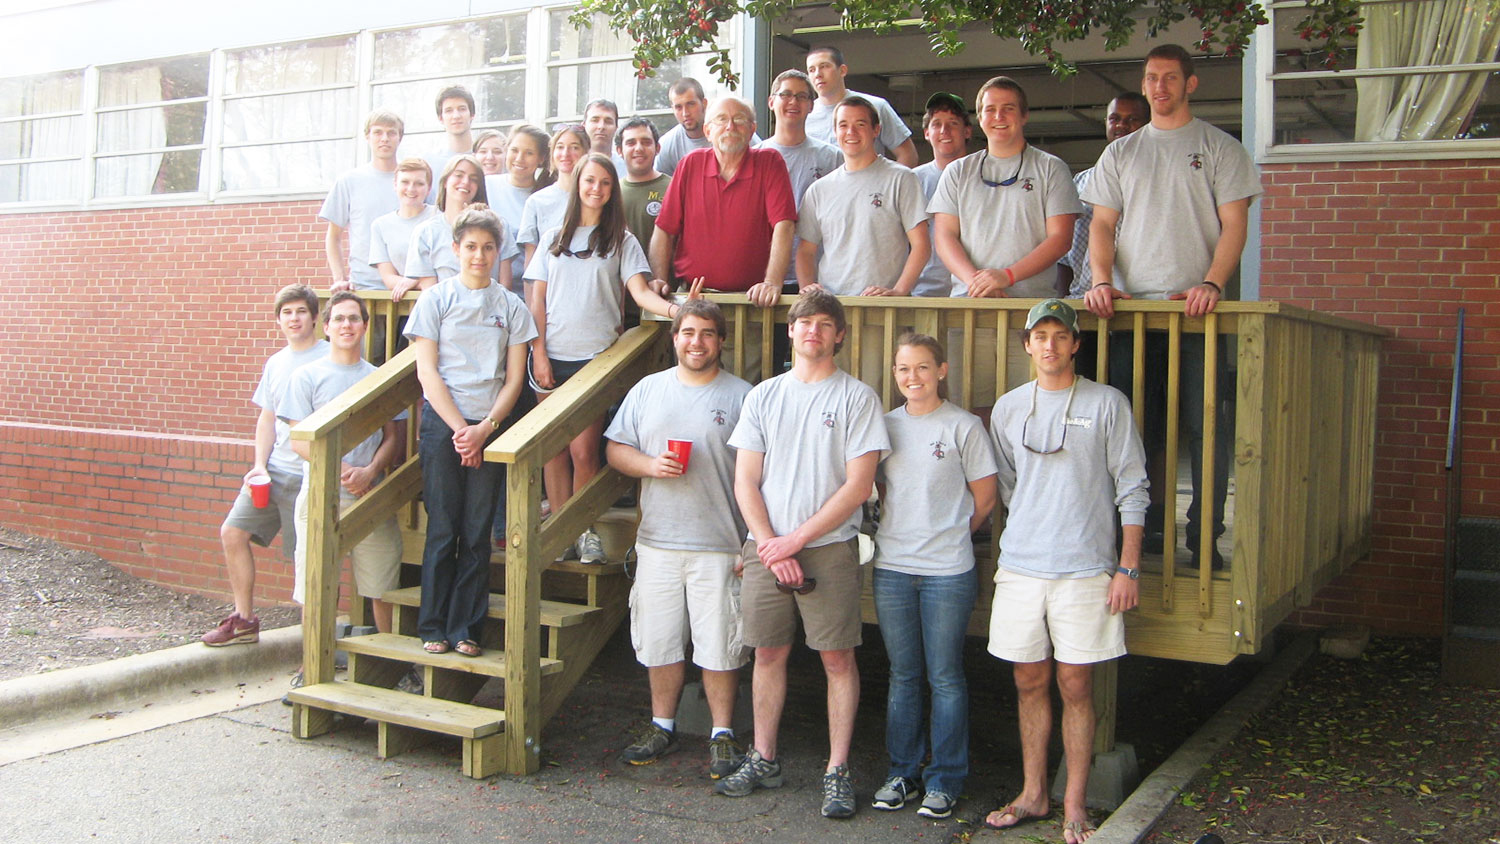 Students and their professor stand on an outdoor deck